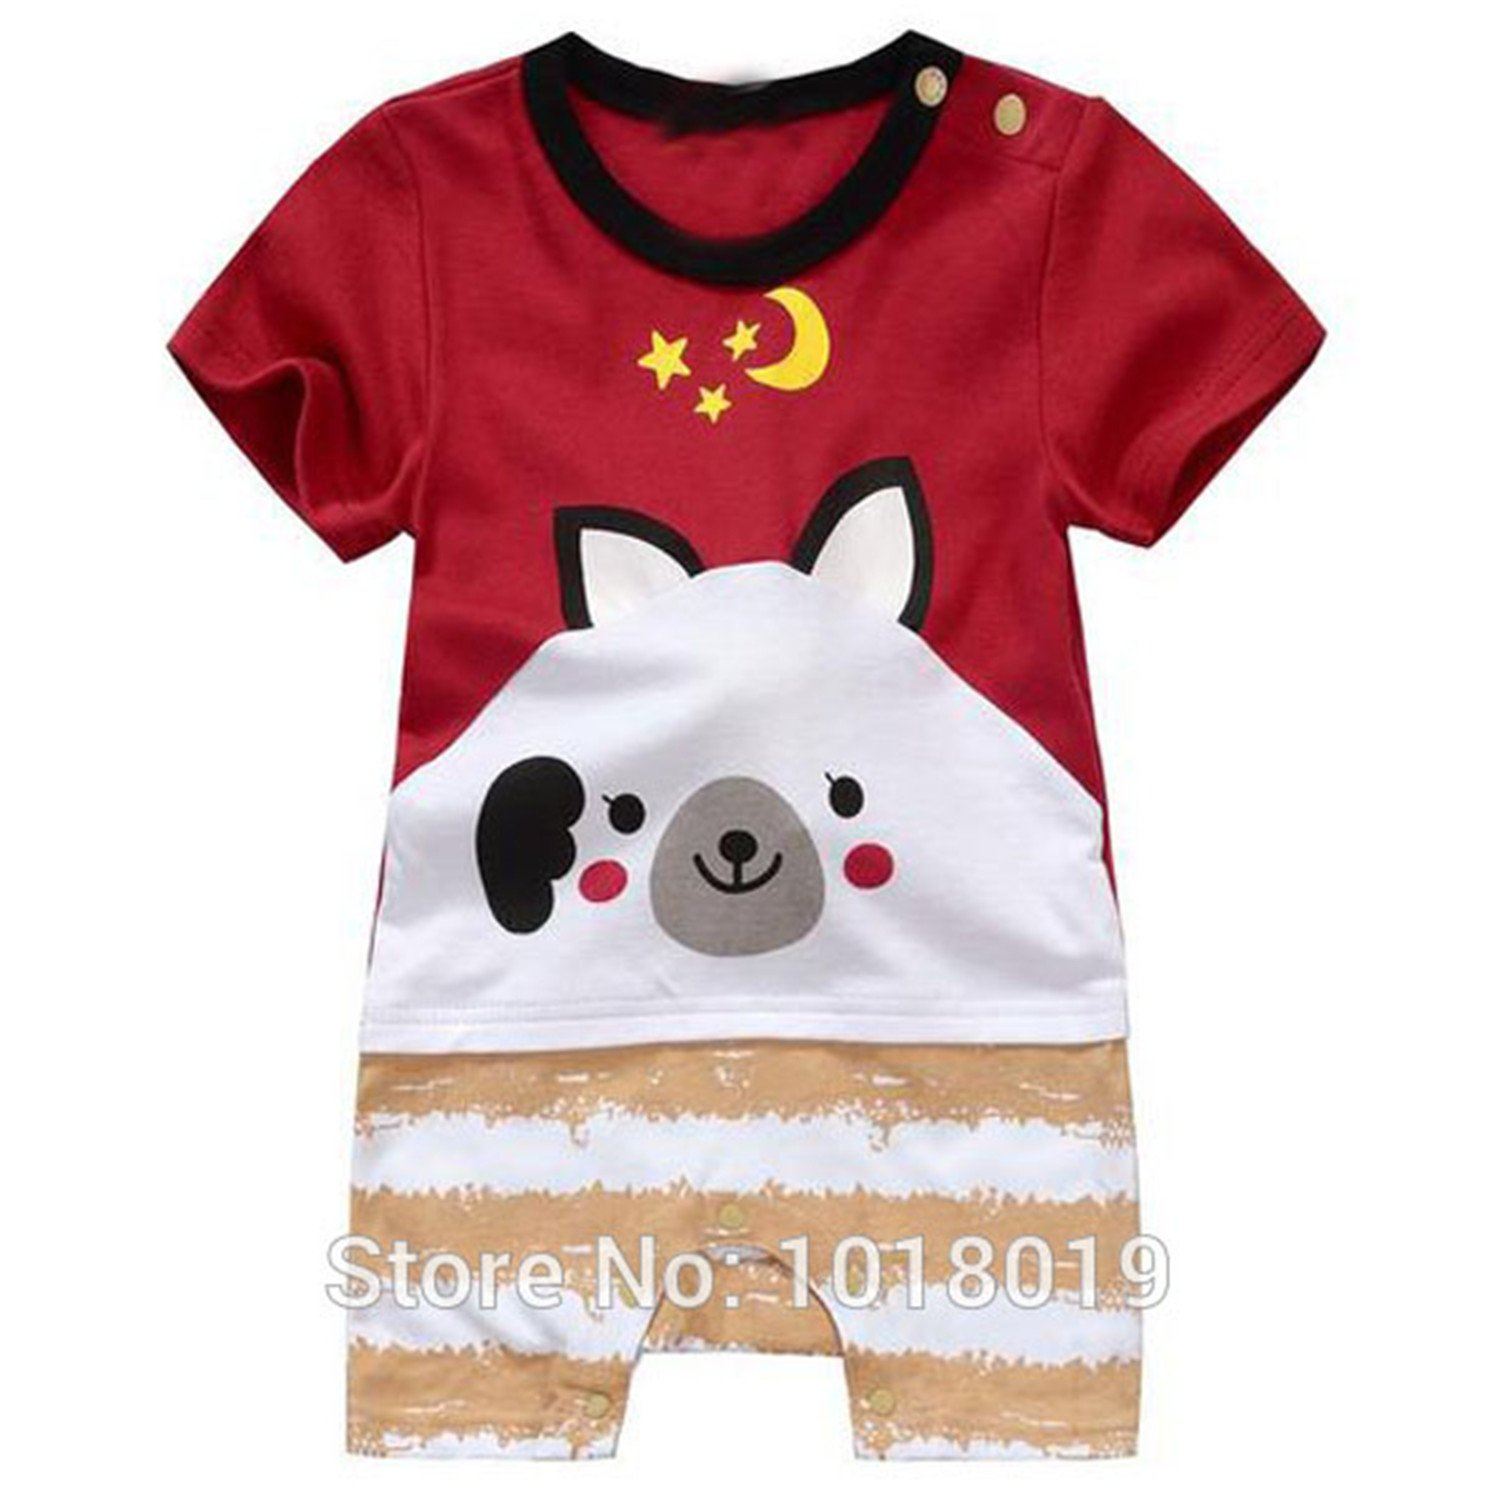 a7f28ac8e41a elephanted Cut Brand 100% Cotton Cartoon Ropa Bebe Baby Boy Baby ...